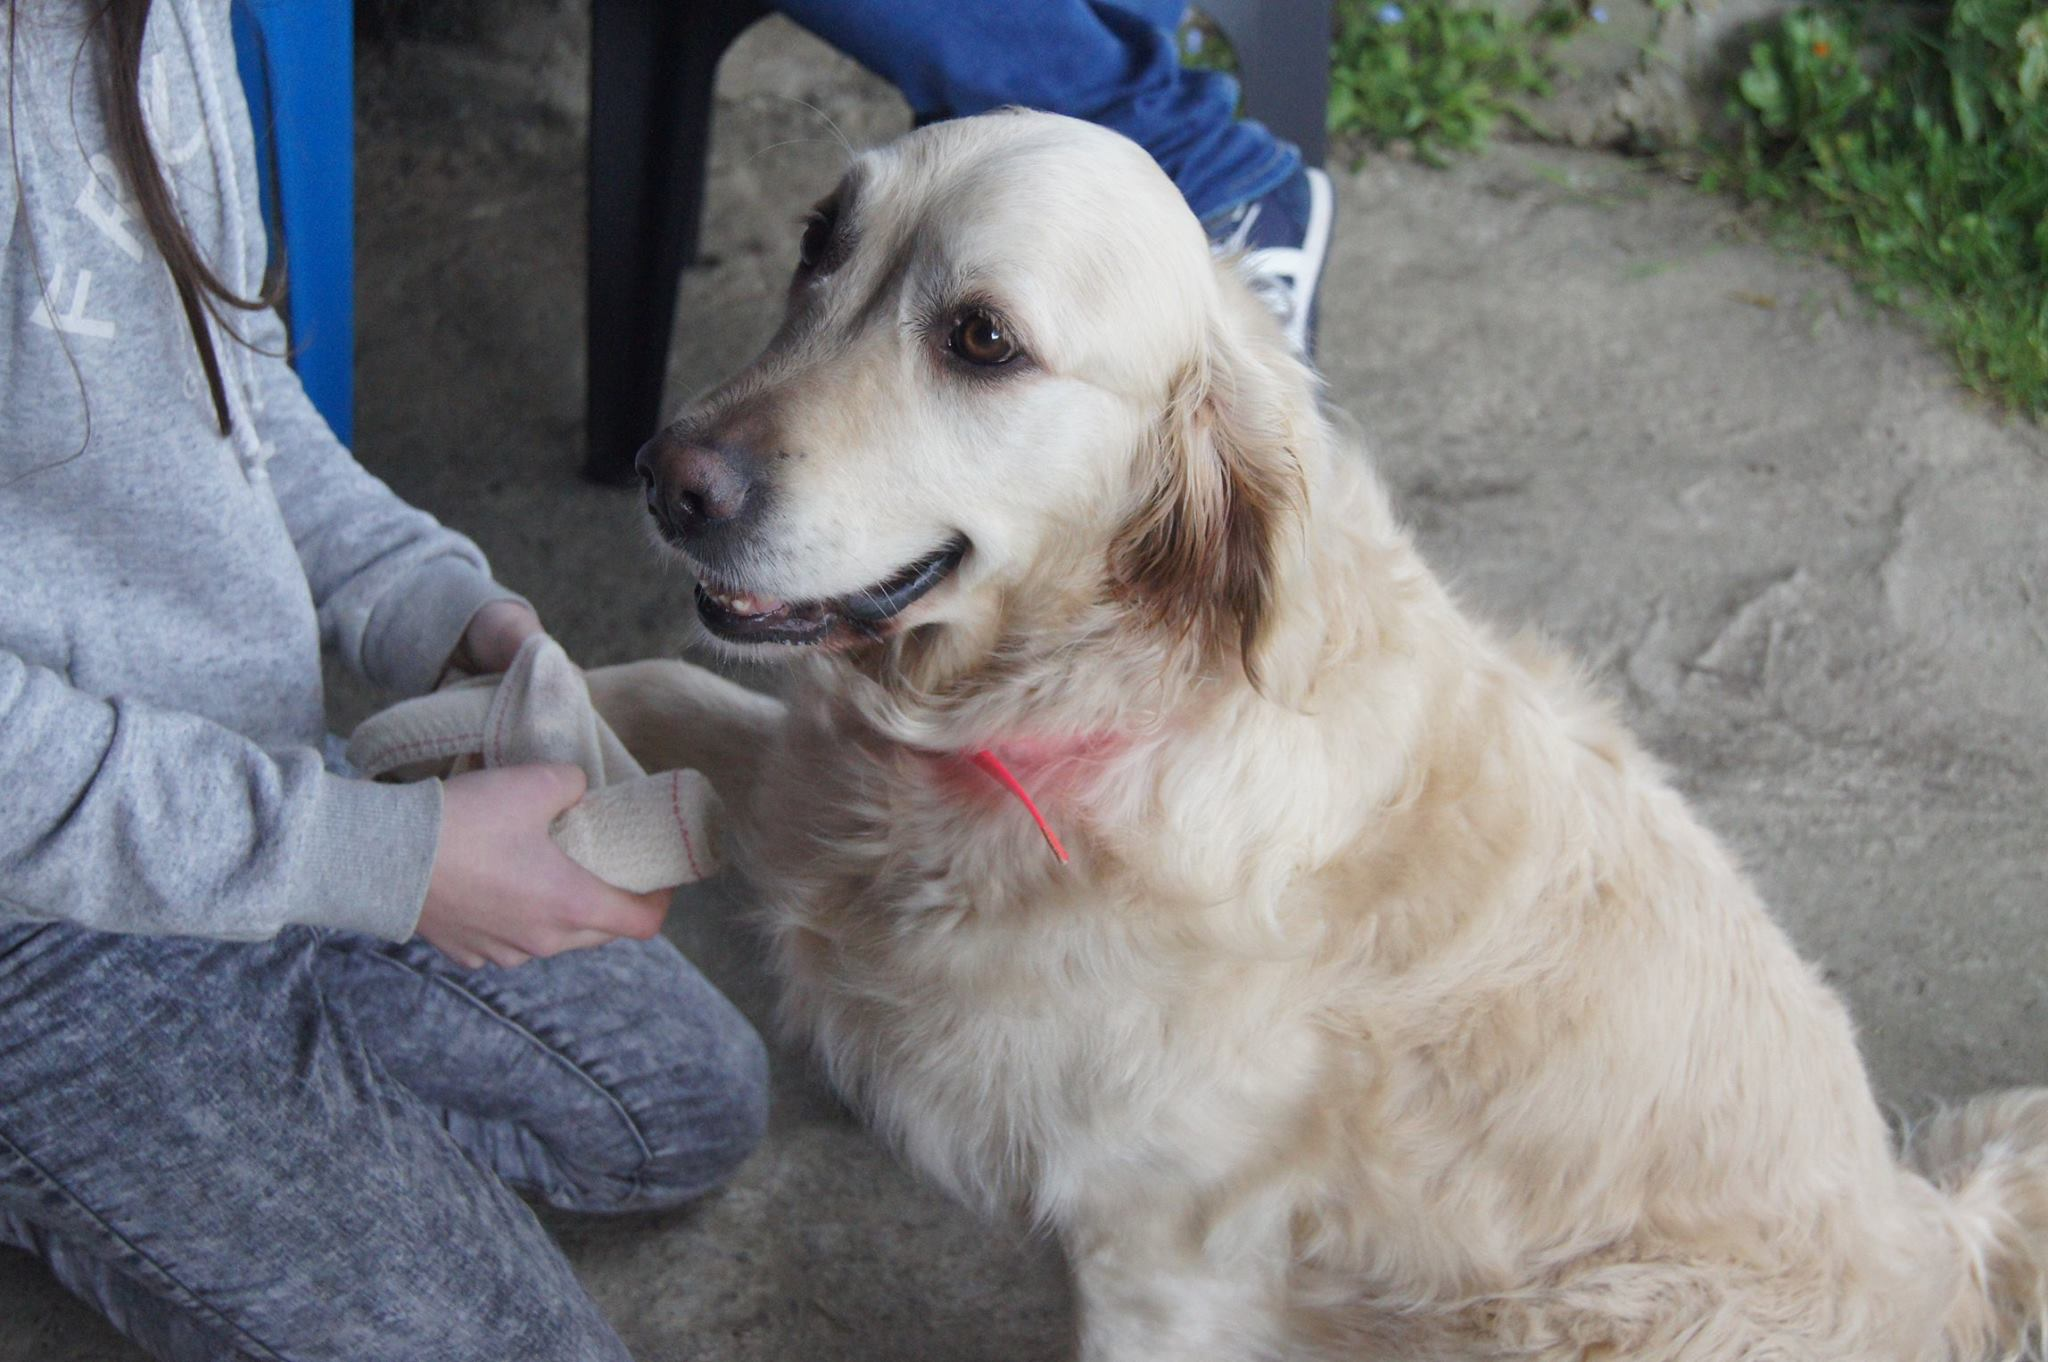 bandage patte , golden retriver , ars canis education canine